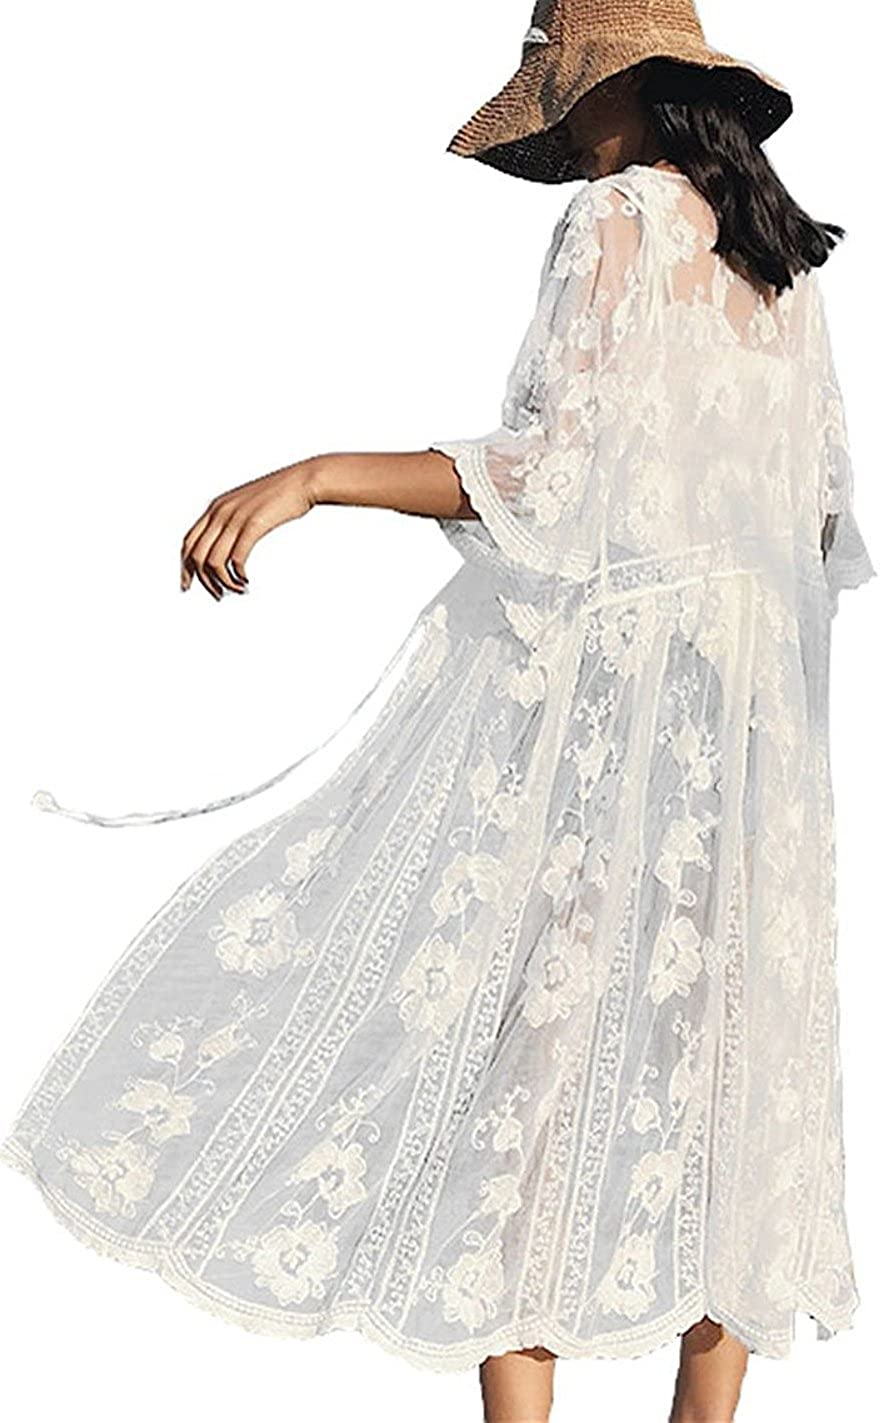 VenuStar Cardigan Womens Long Lace Kimono Beach Cover up Embroidered with 3/4 Sleeves A-White)